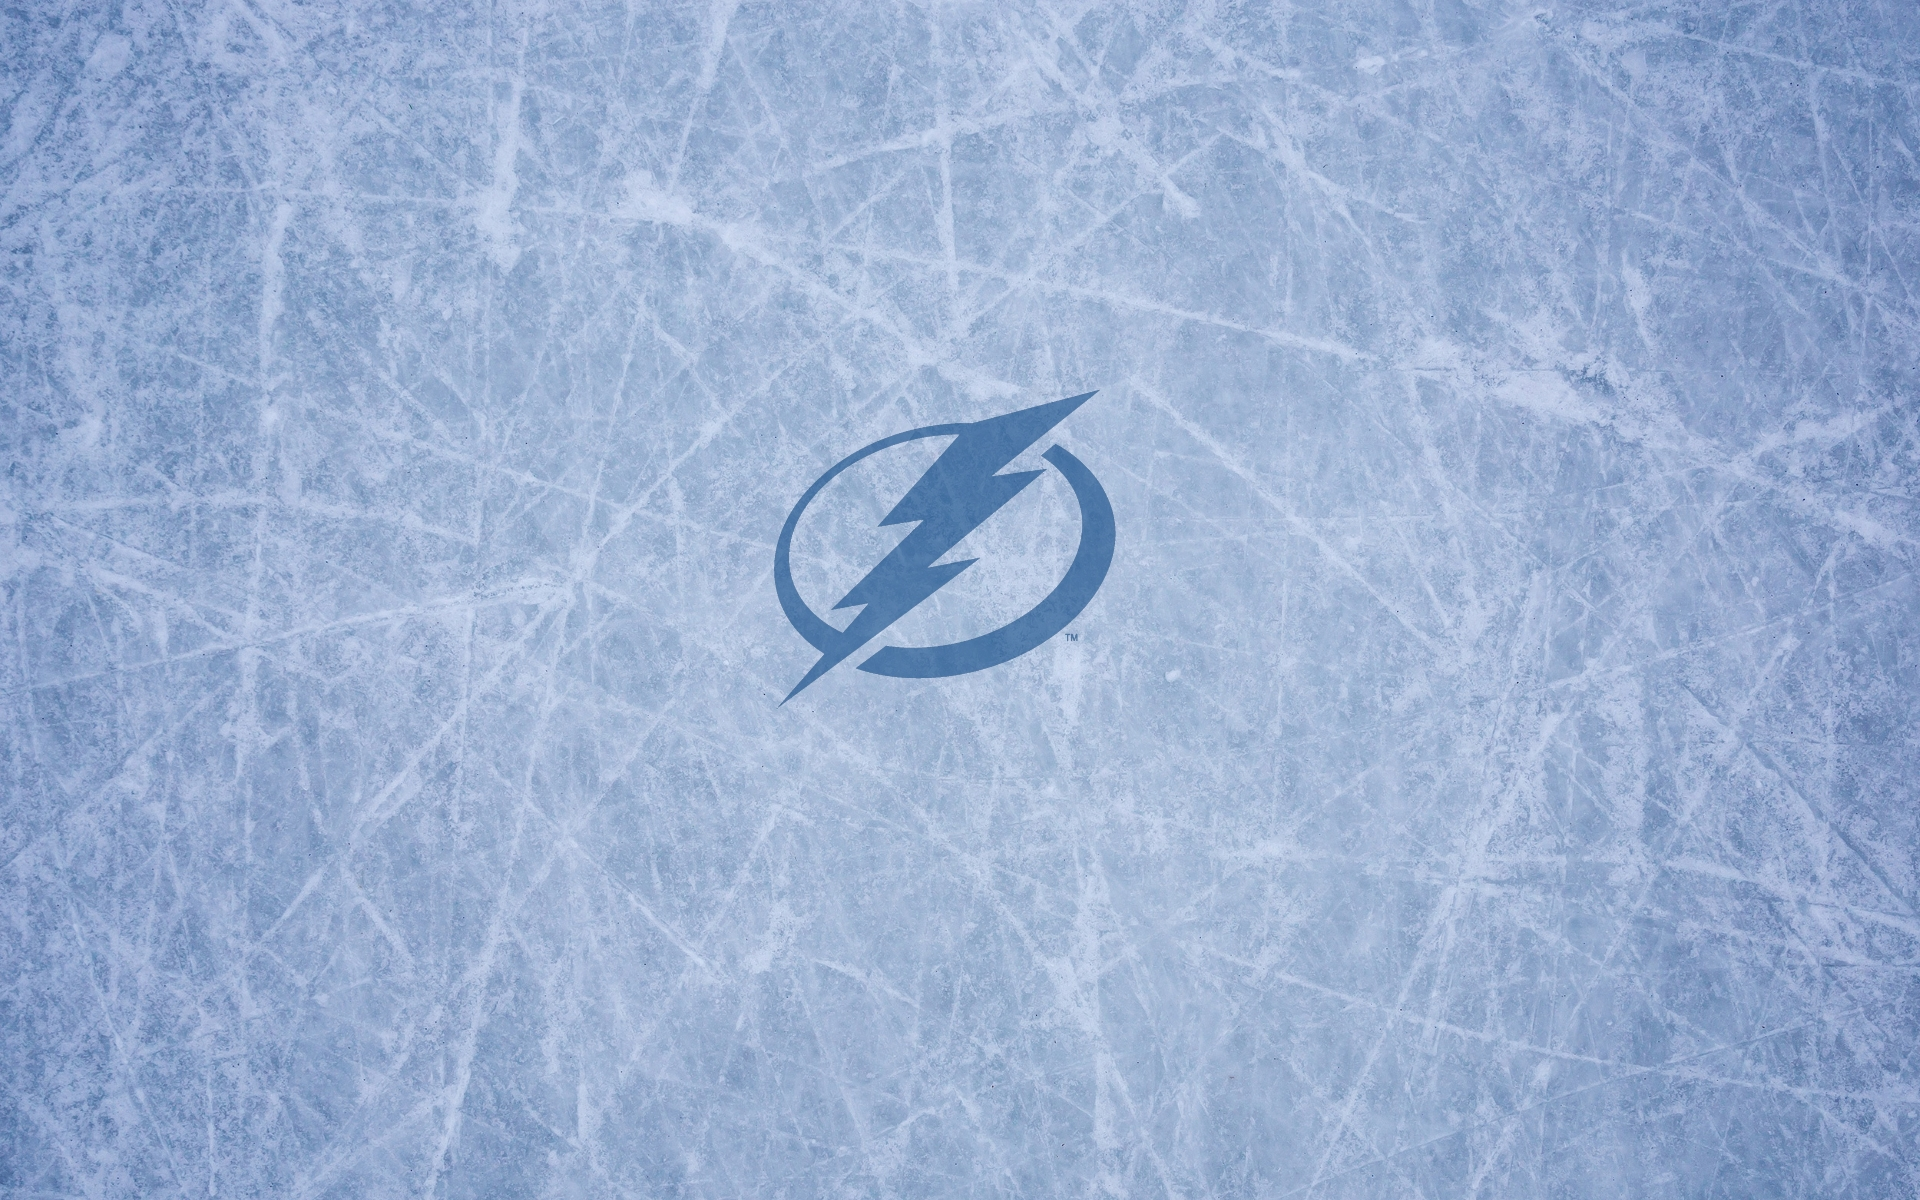 Tampa Bay Lightning Logos Download 1920x1200